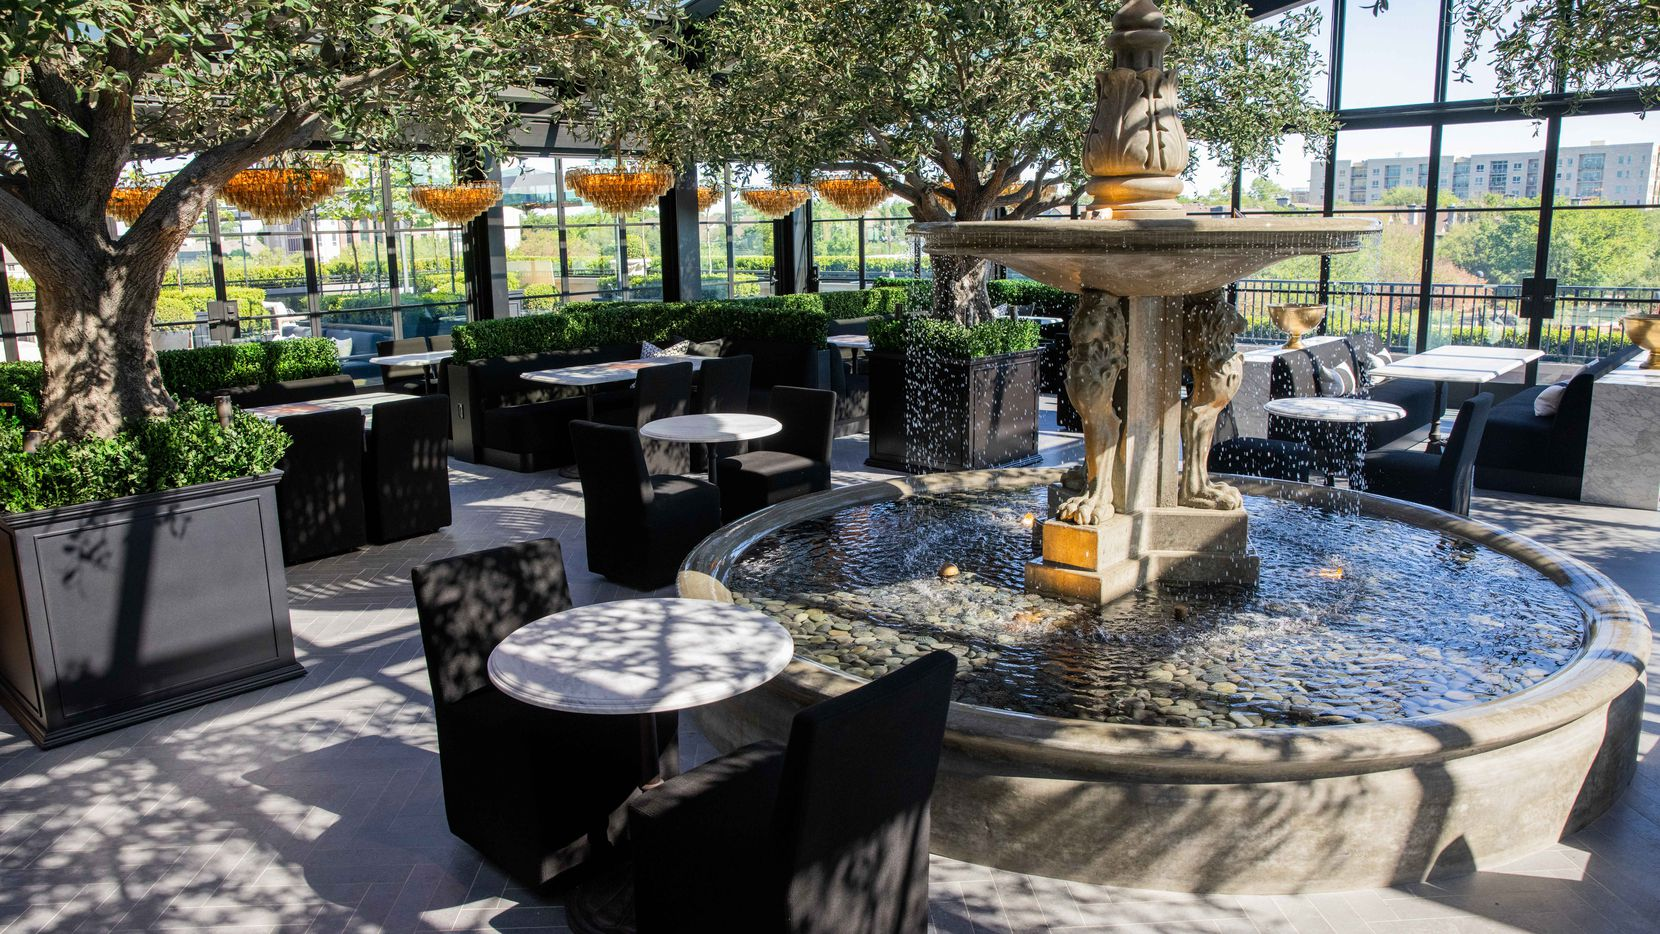 The dining area of the RH Dallas gallery rooftop restaurant. The third level includes a wine bar and open patio space.